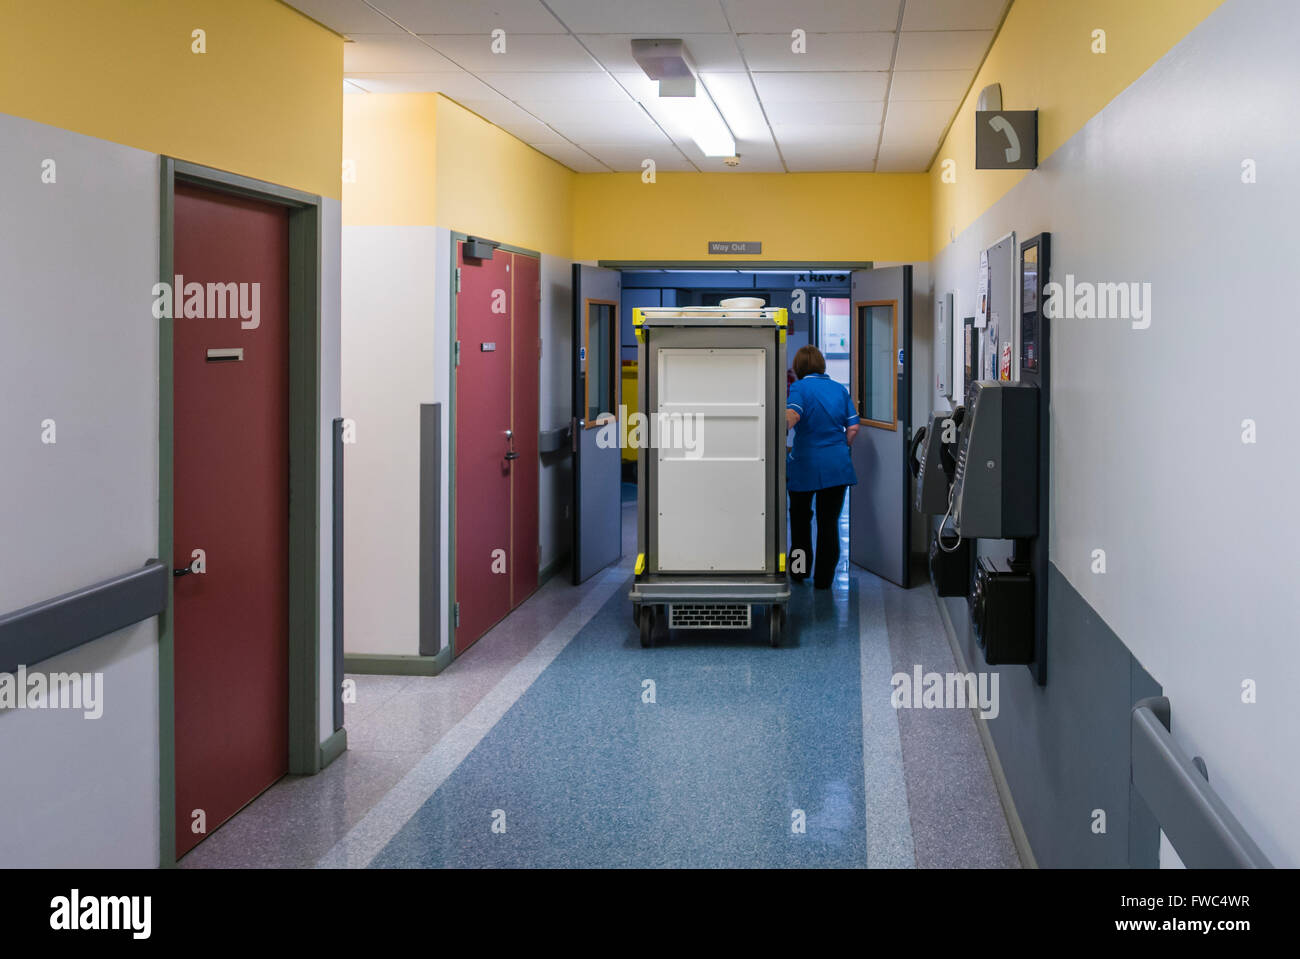 A domestic wheels a hot-meal trolley through a hospital ward. - Stock Image